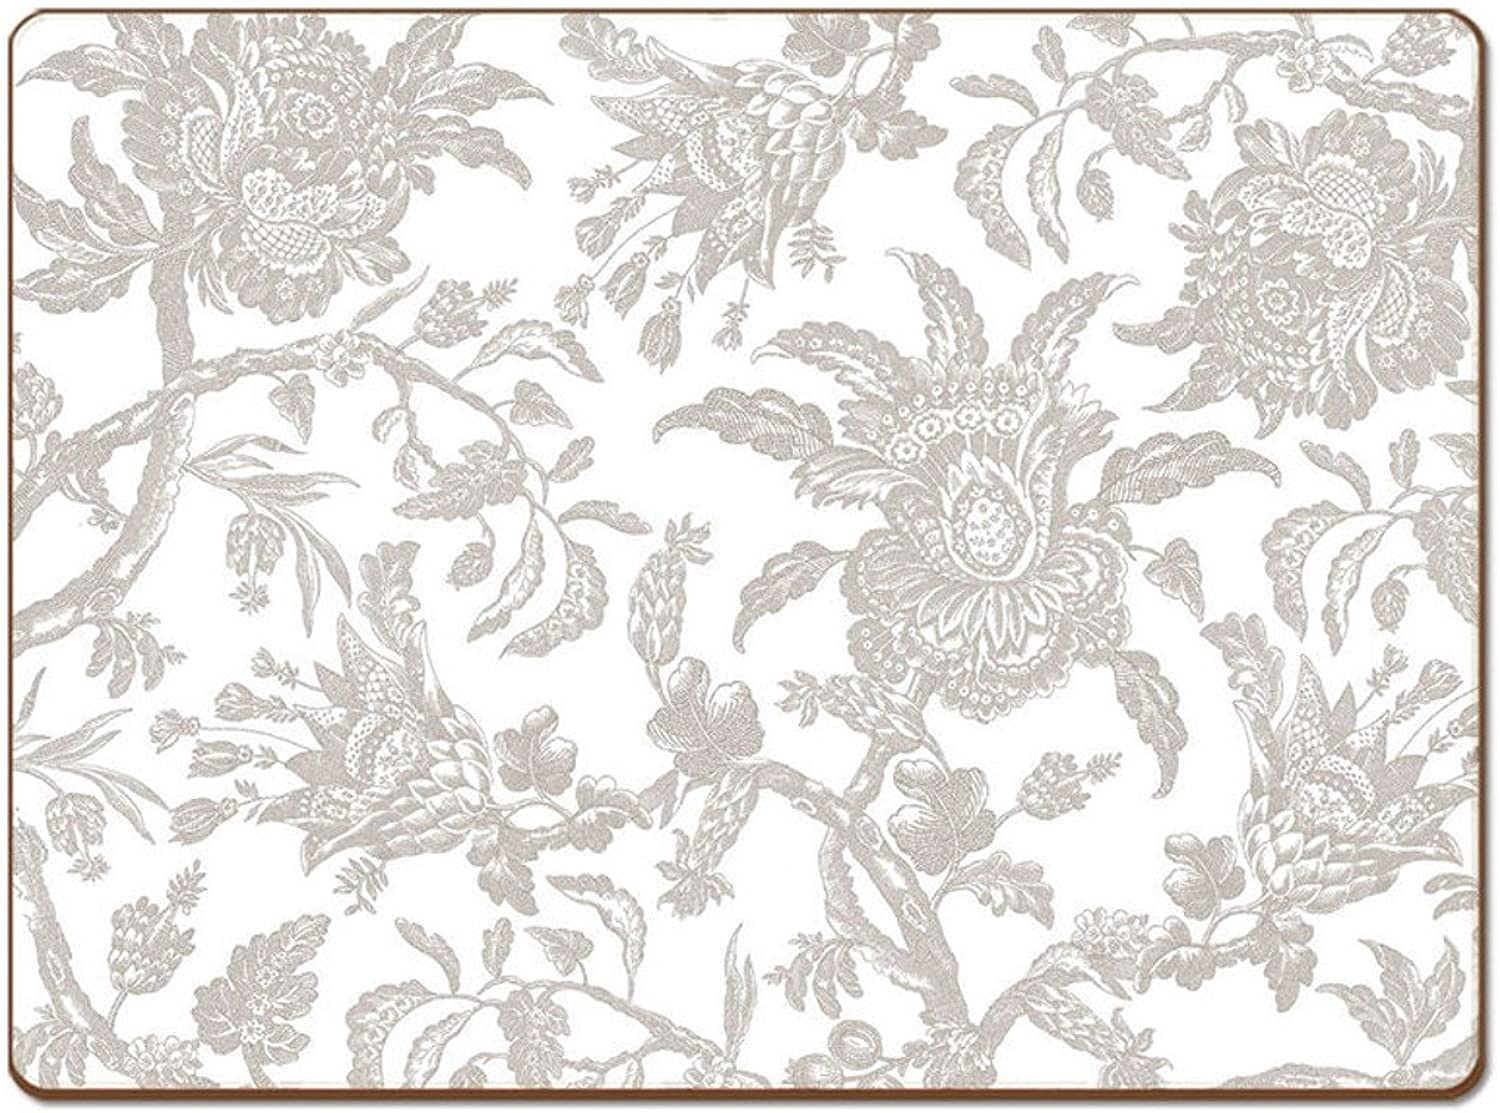 Cala Home 4 Premium Hardboard Placemats Table Mats, Arcadia Mist 81849